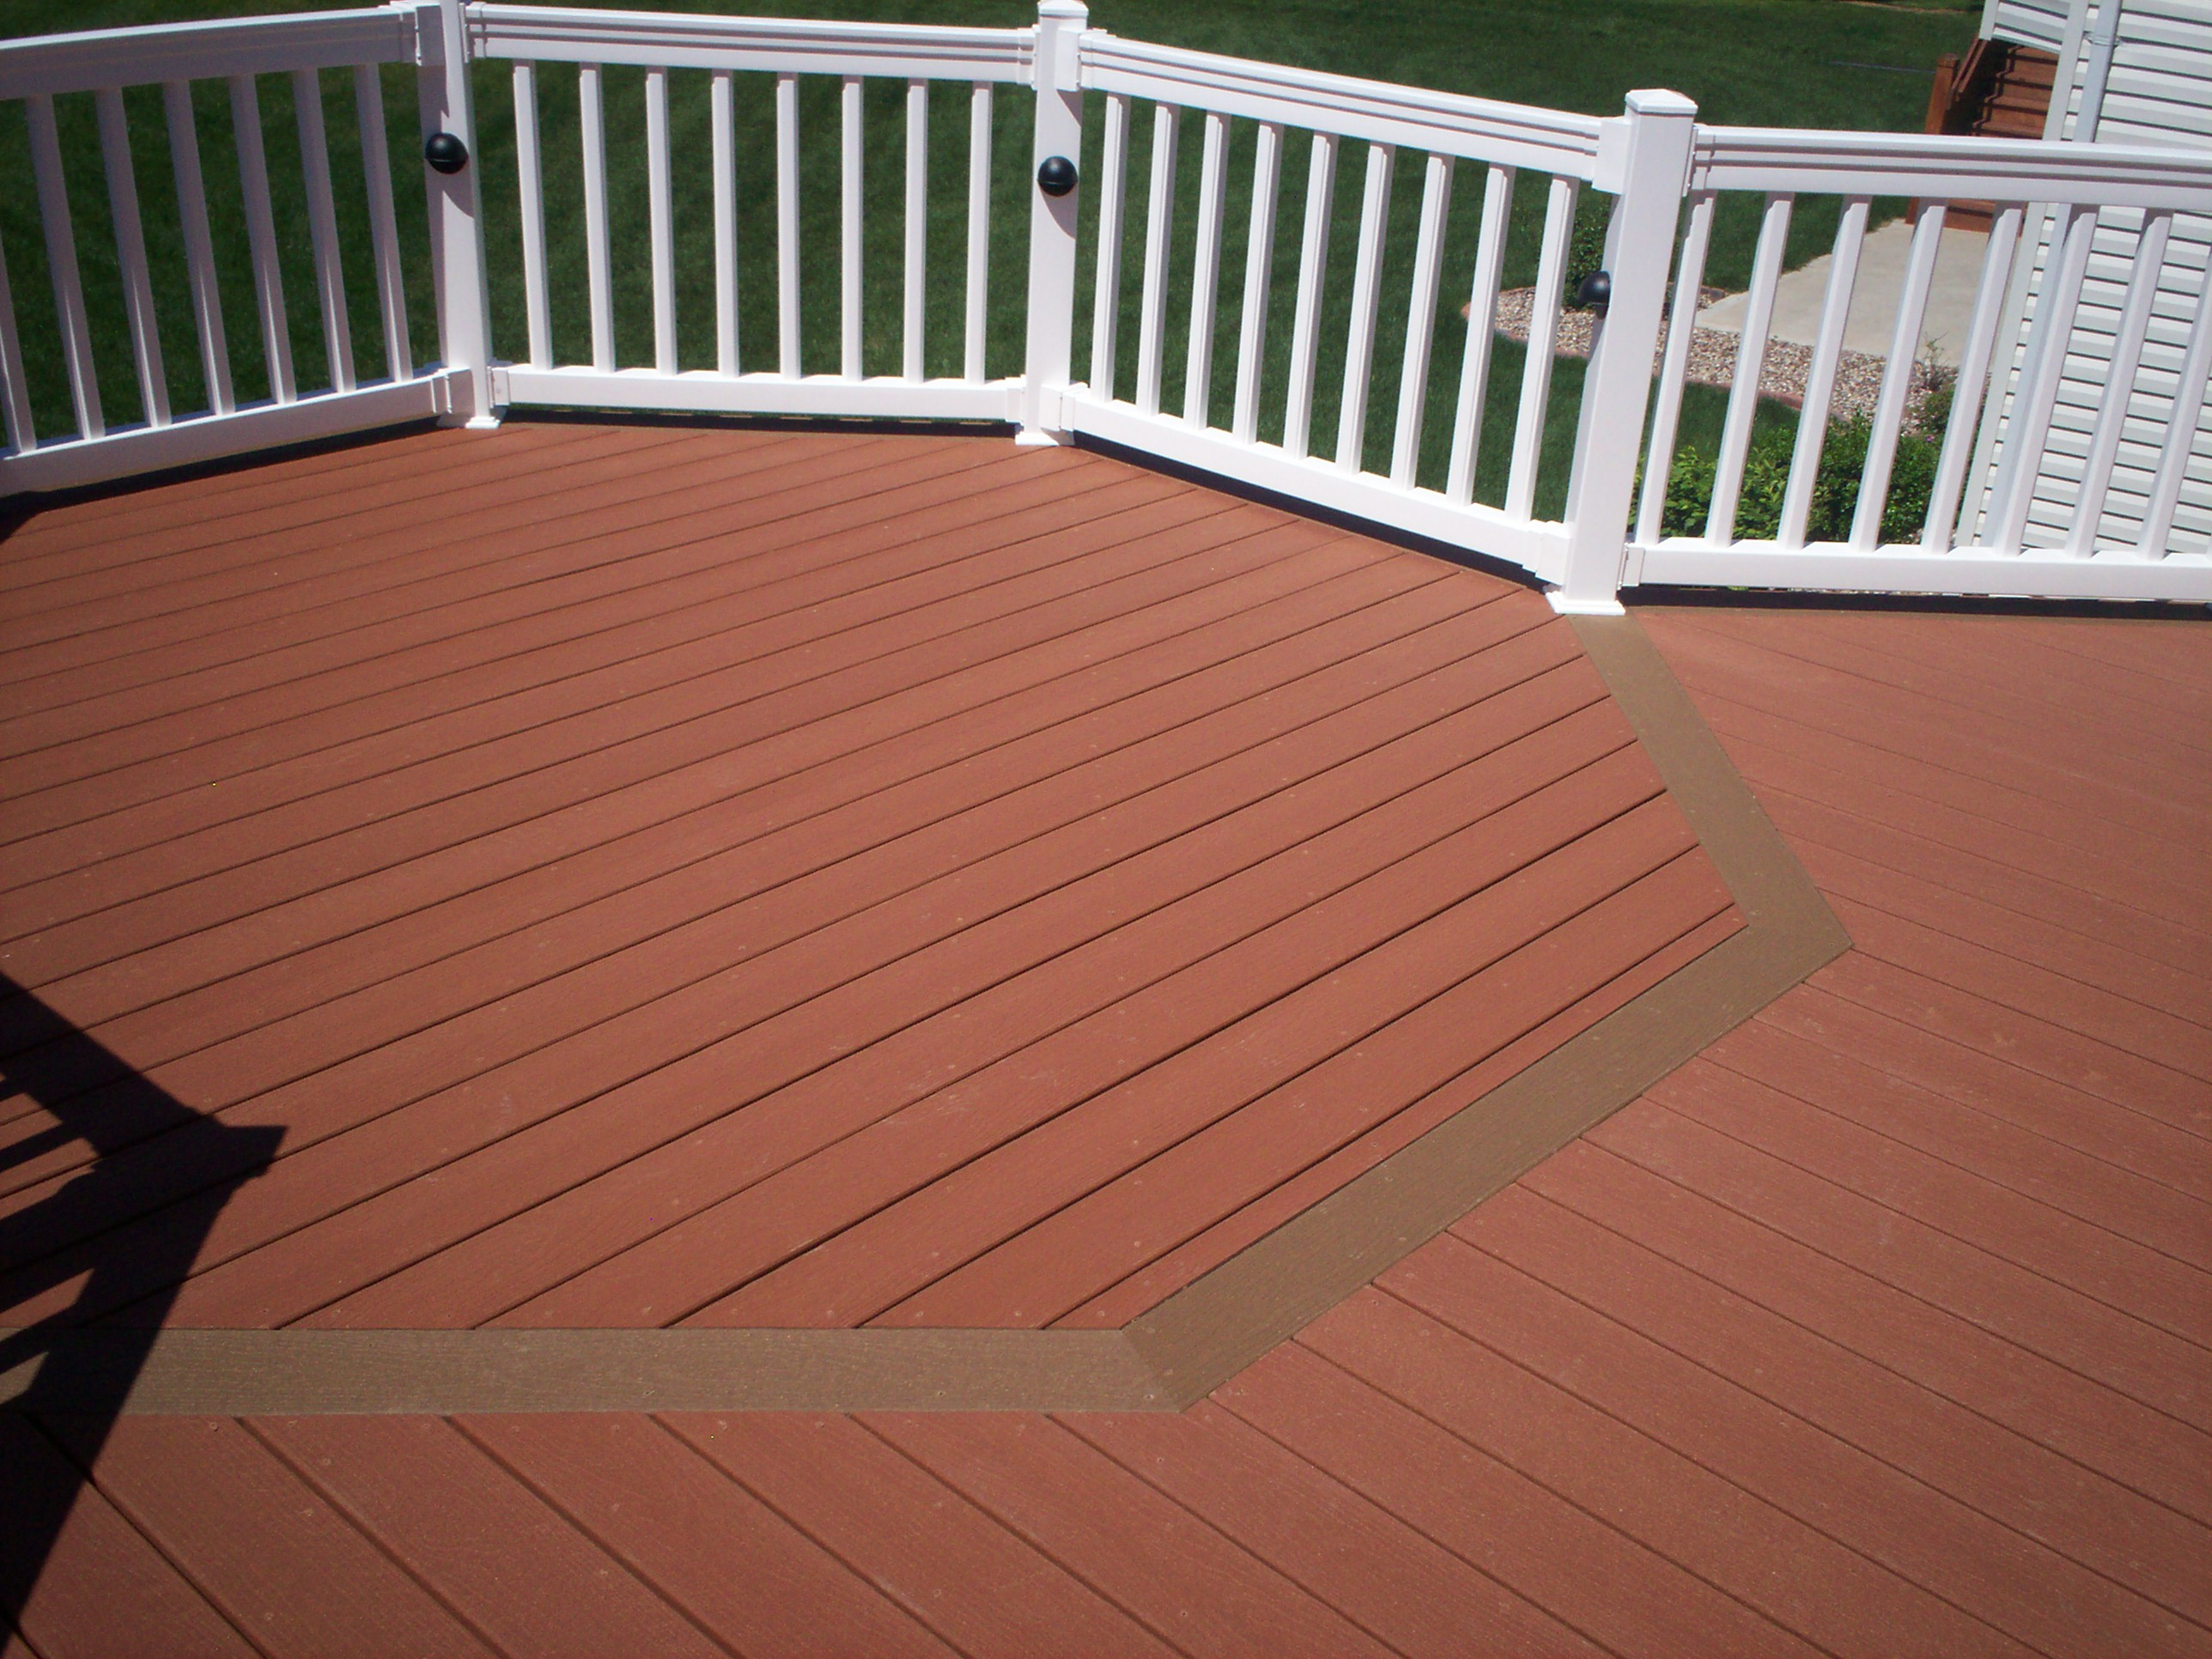 terra cotta evergrain decking matched with white railing for charming patio ideas